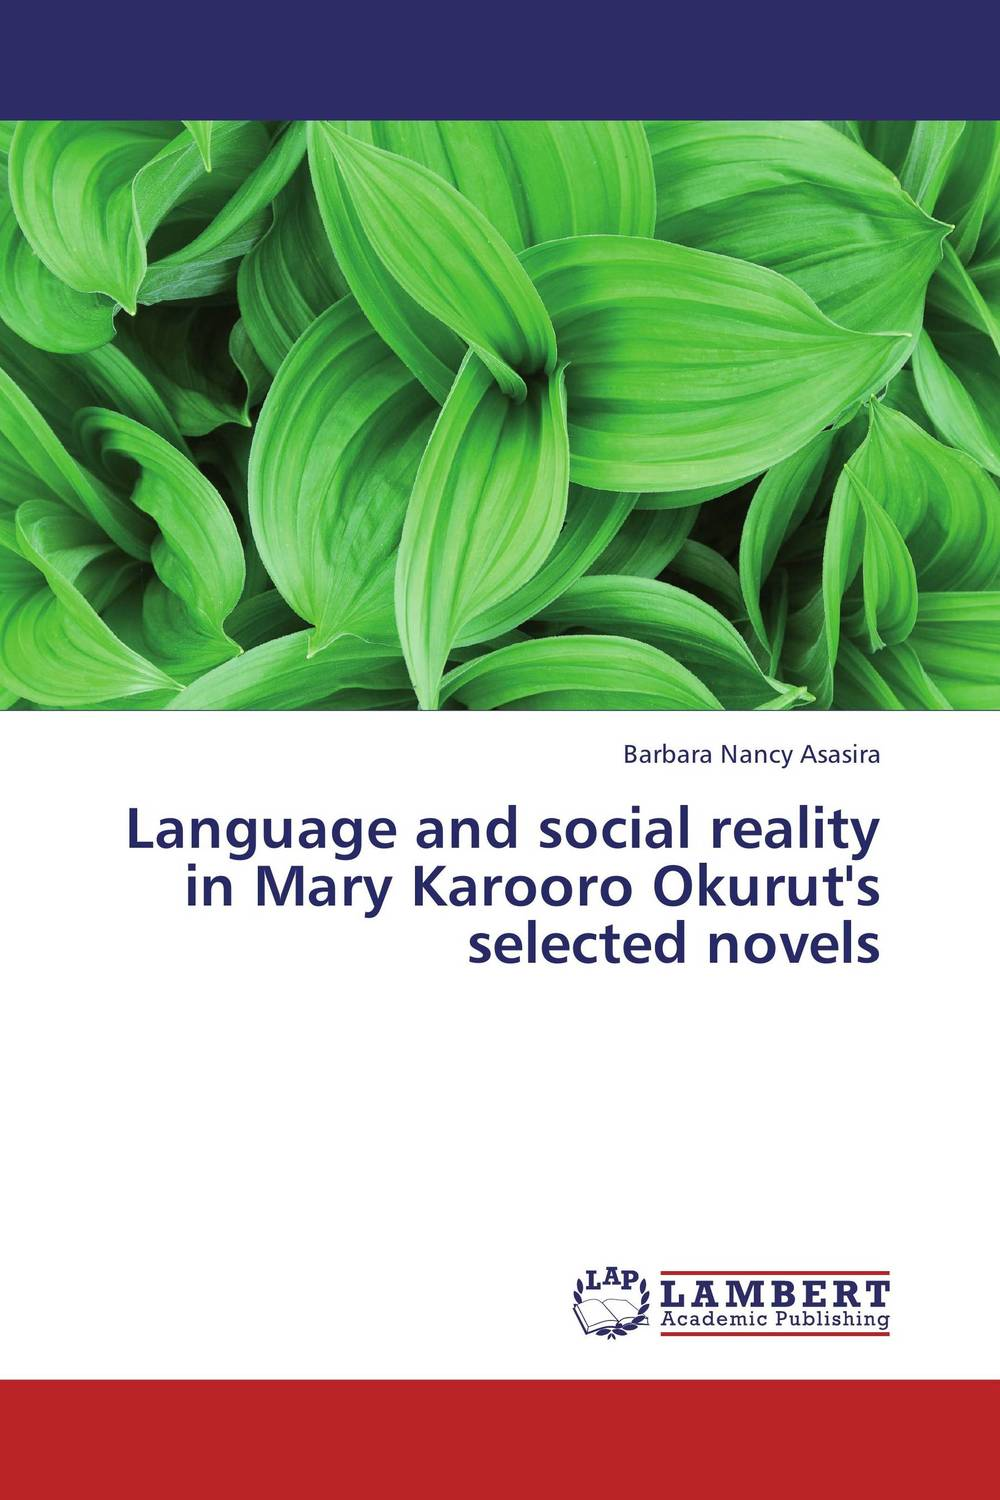 Language and social reality in Mary Karooro Okurut's selected novels the relationship between dementias and language disorders